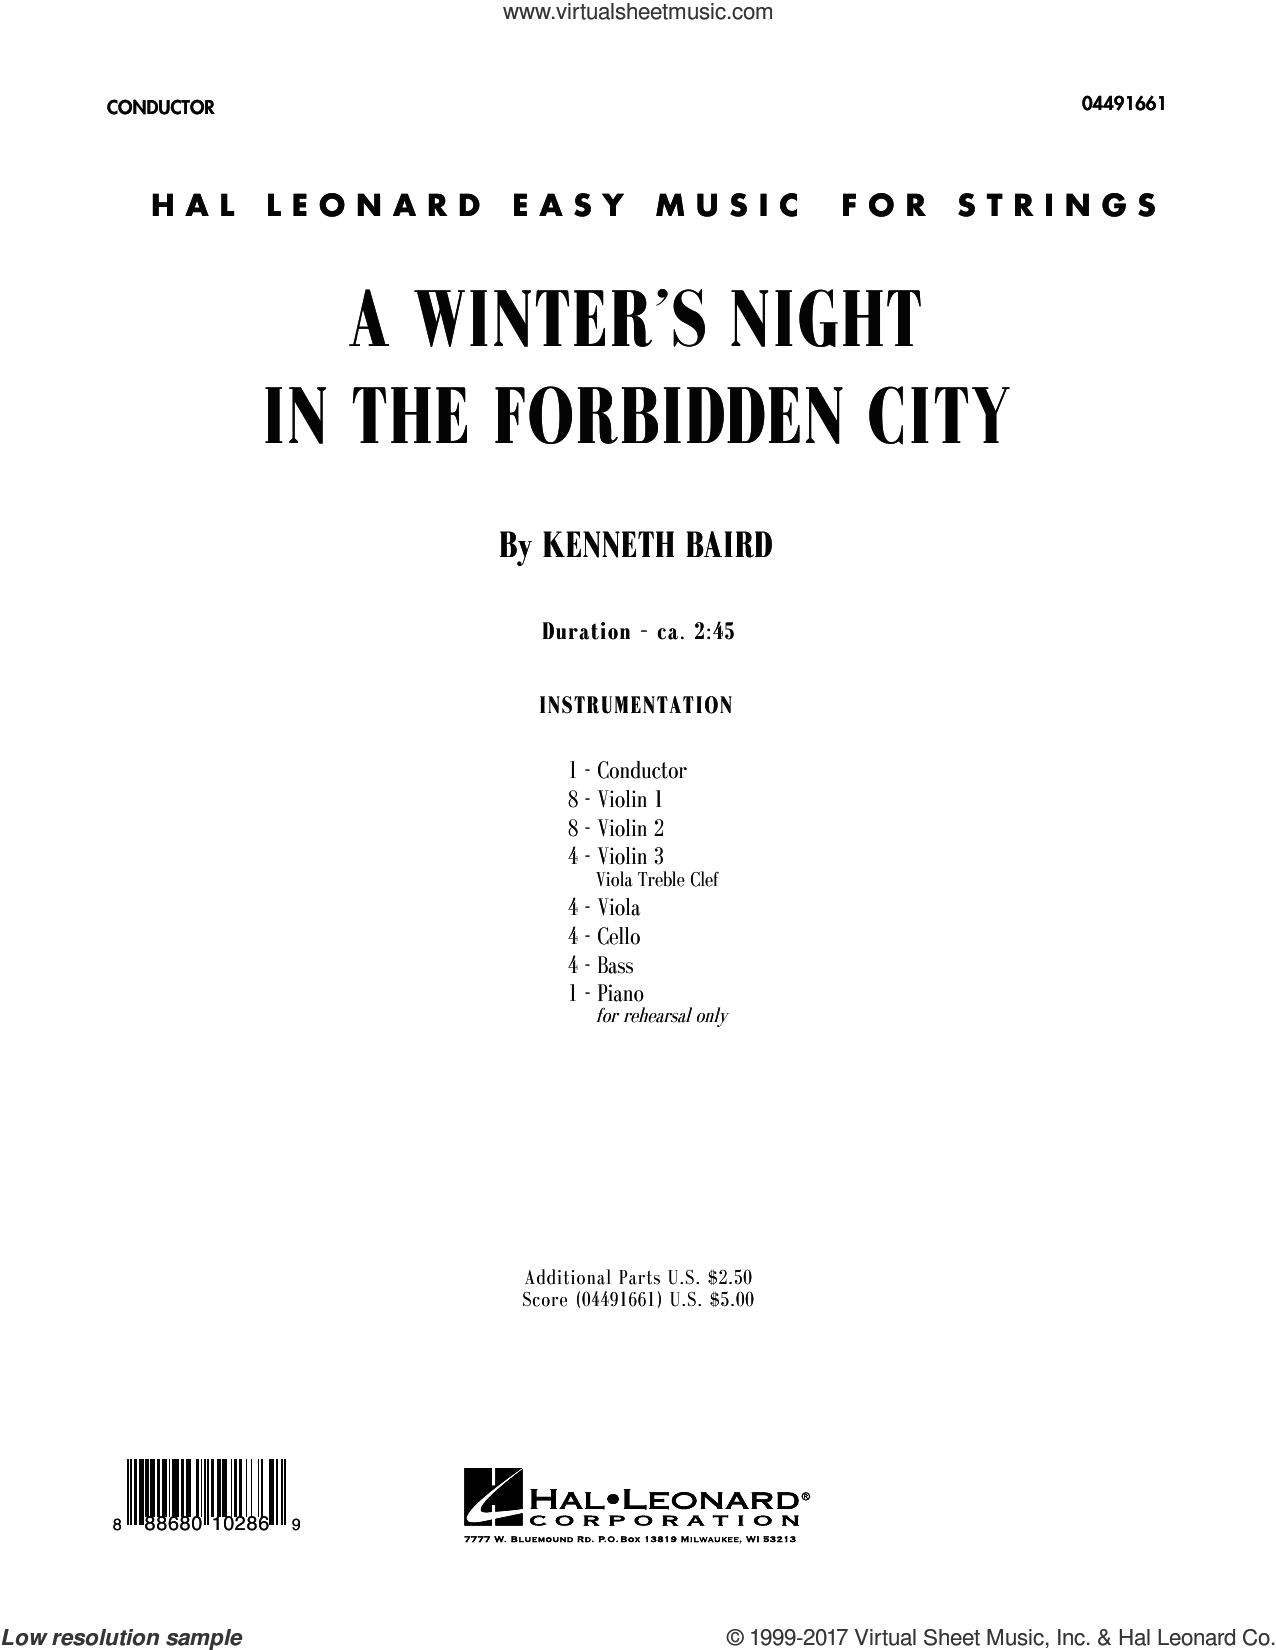 A Winter's Night in the Forbidden City (COMPLETE) sheet music for orchestra by Kenneth Baird, Christmas carol score, intermediate orchestra. Score Image Preview.